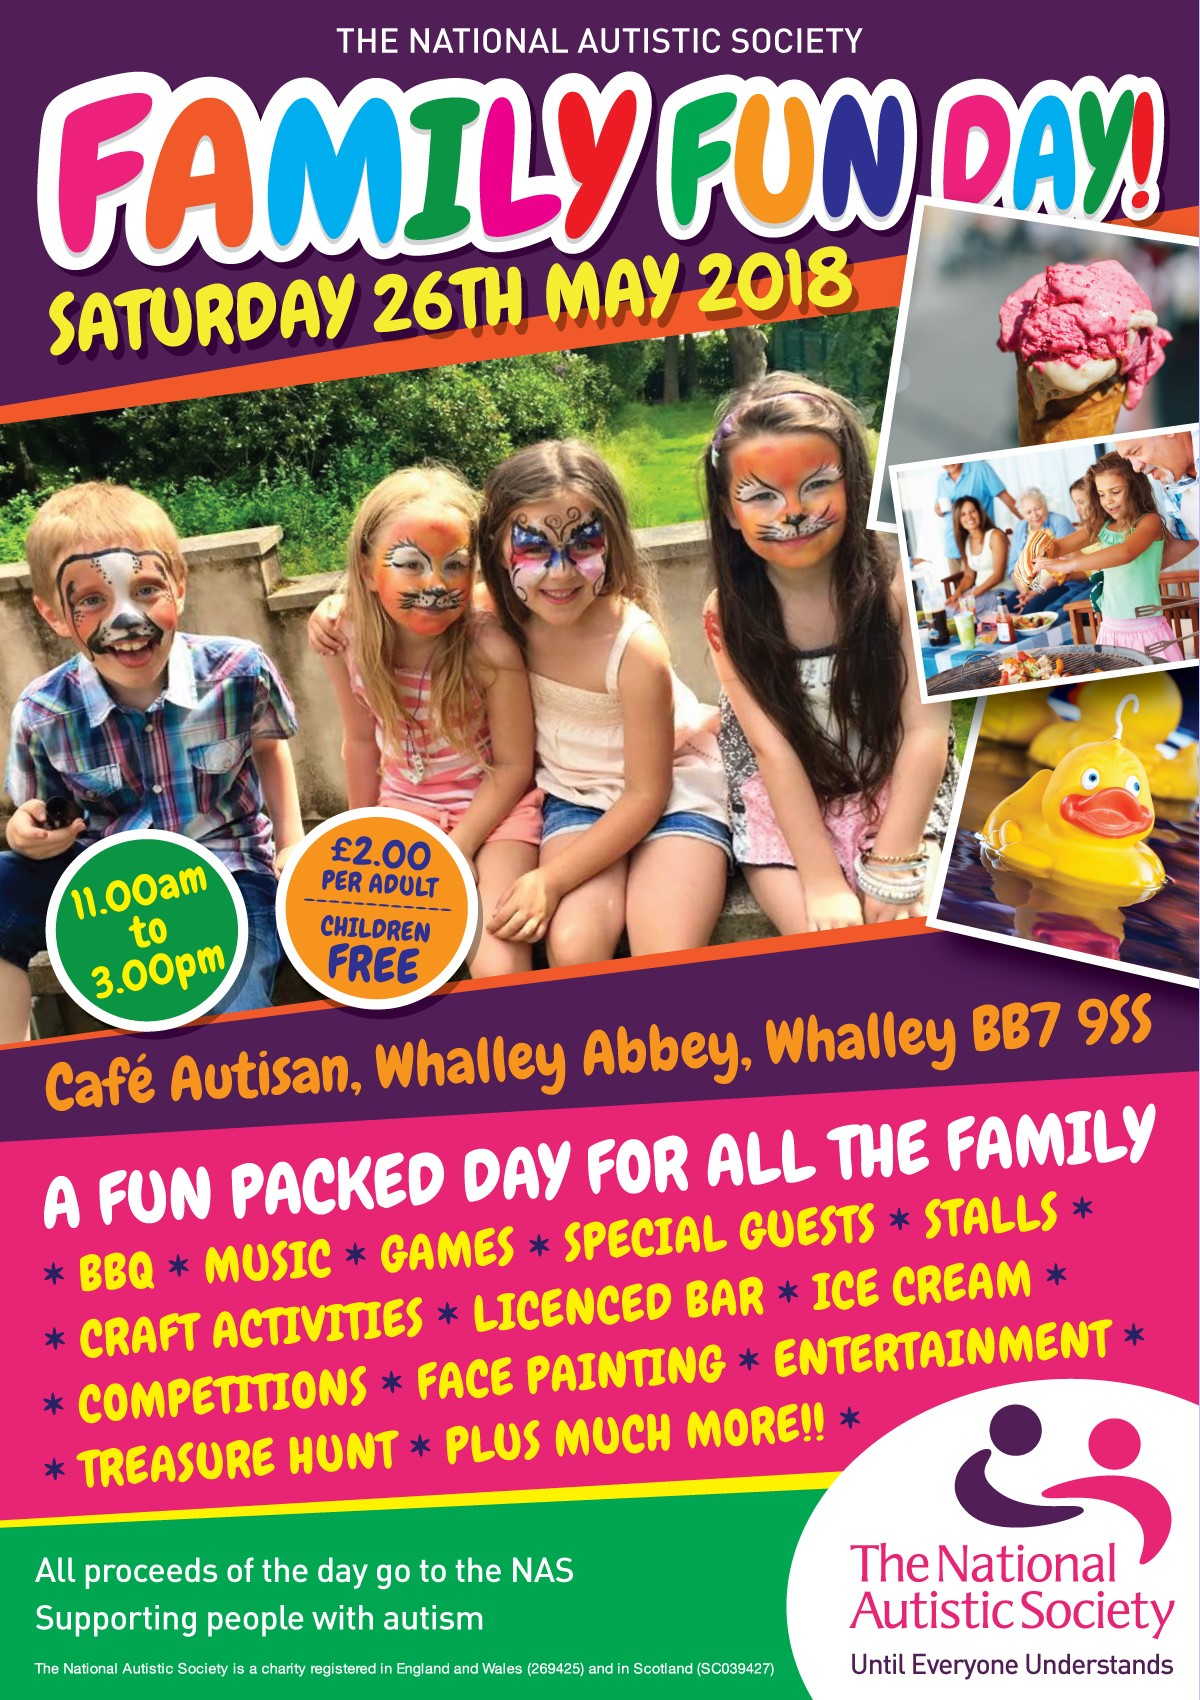 The National Autistic Society Family Fun Day